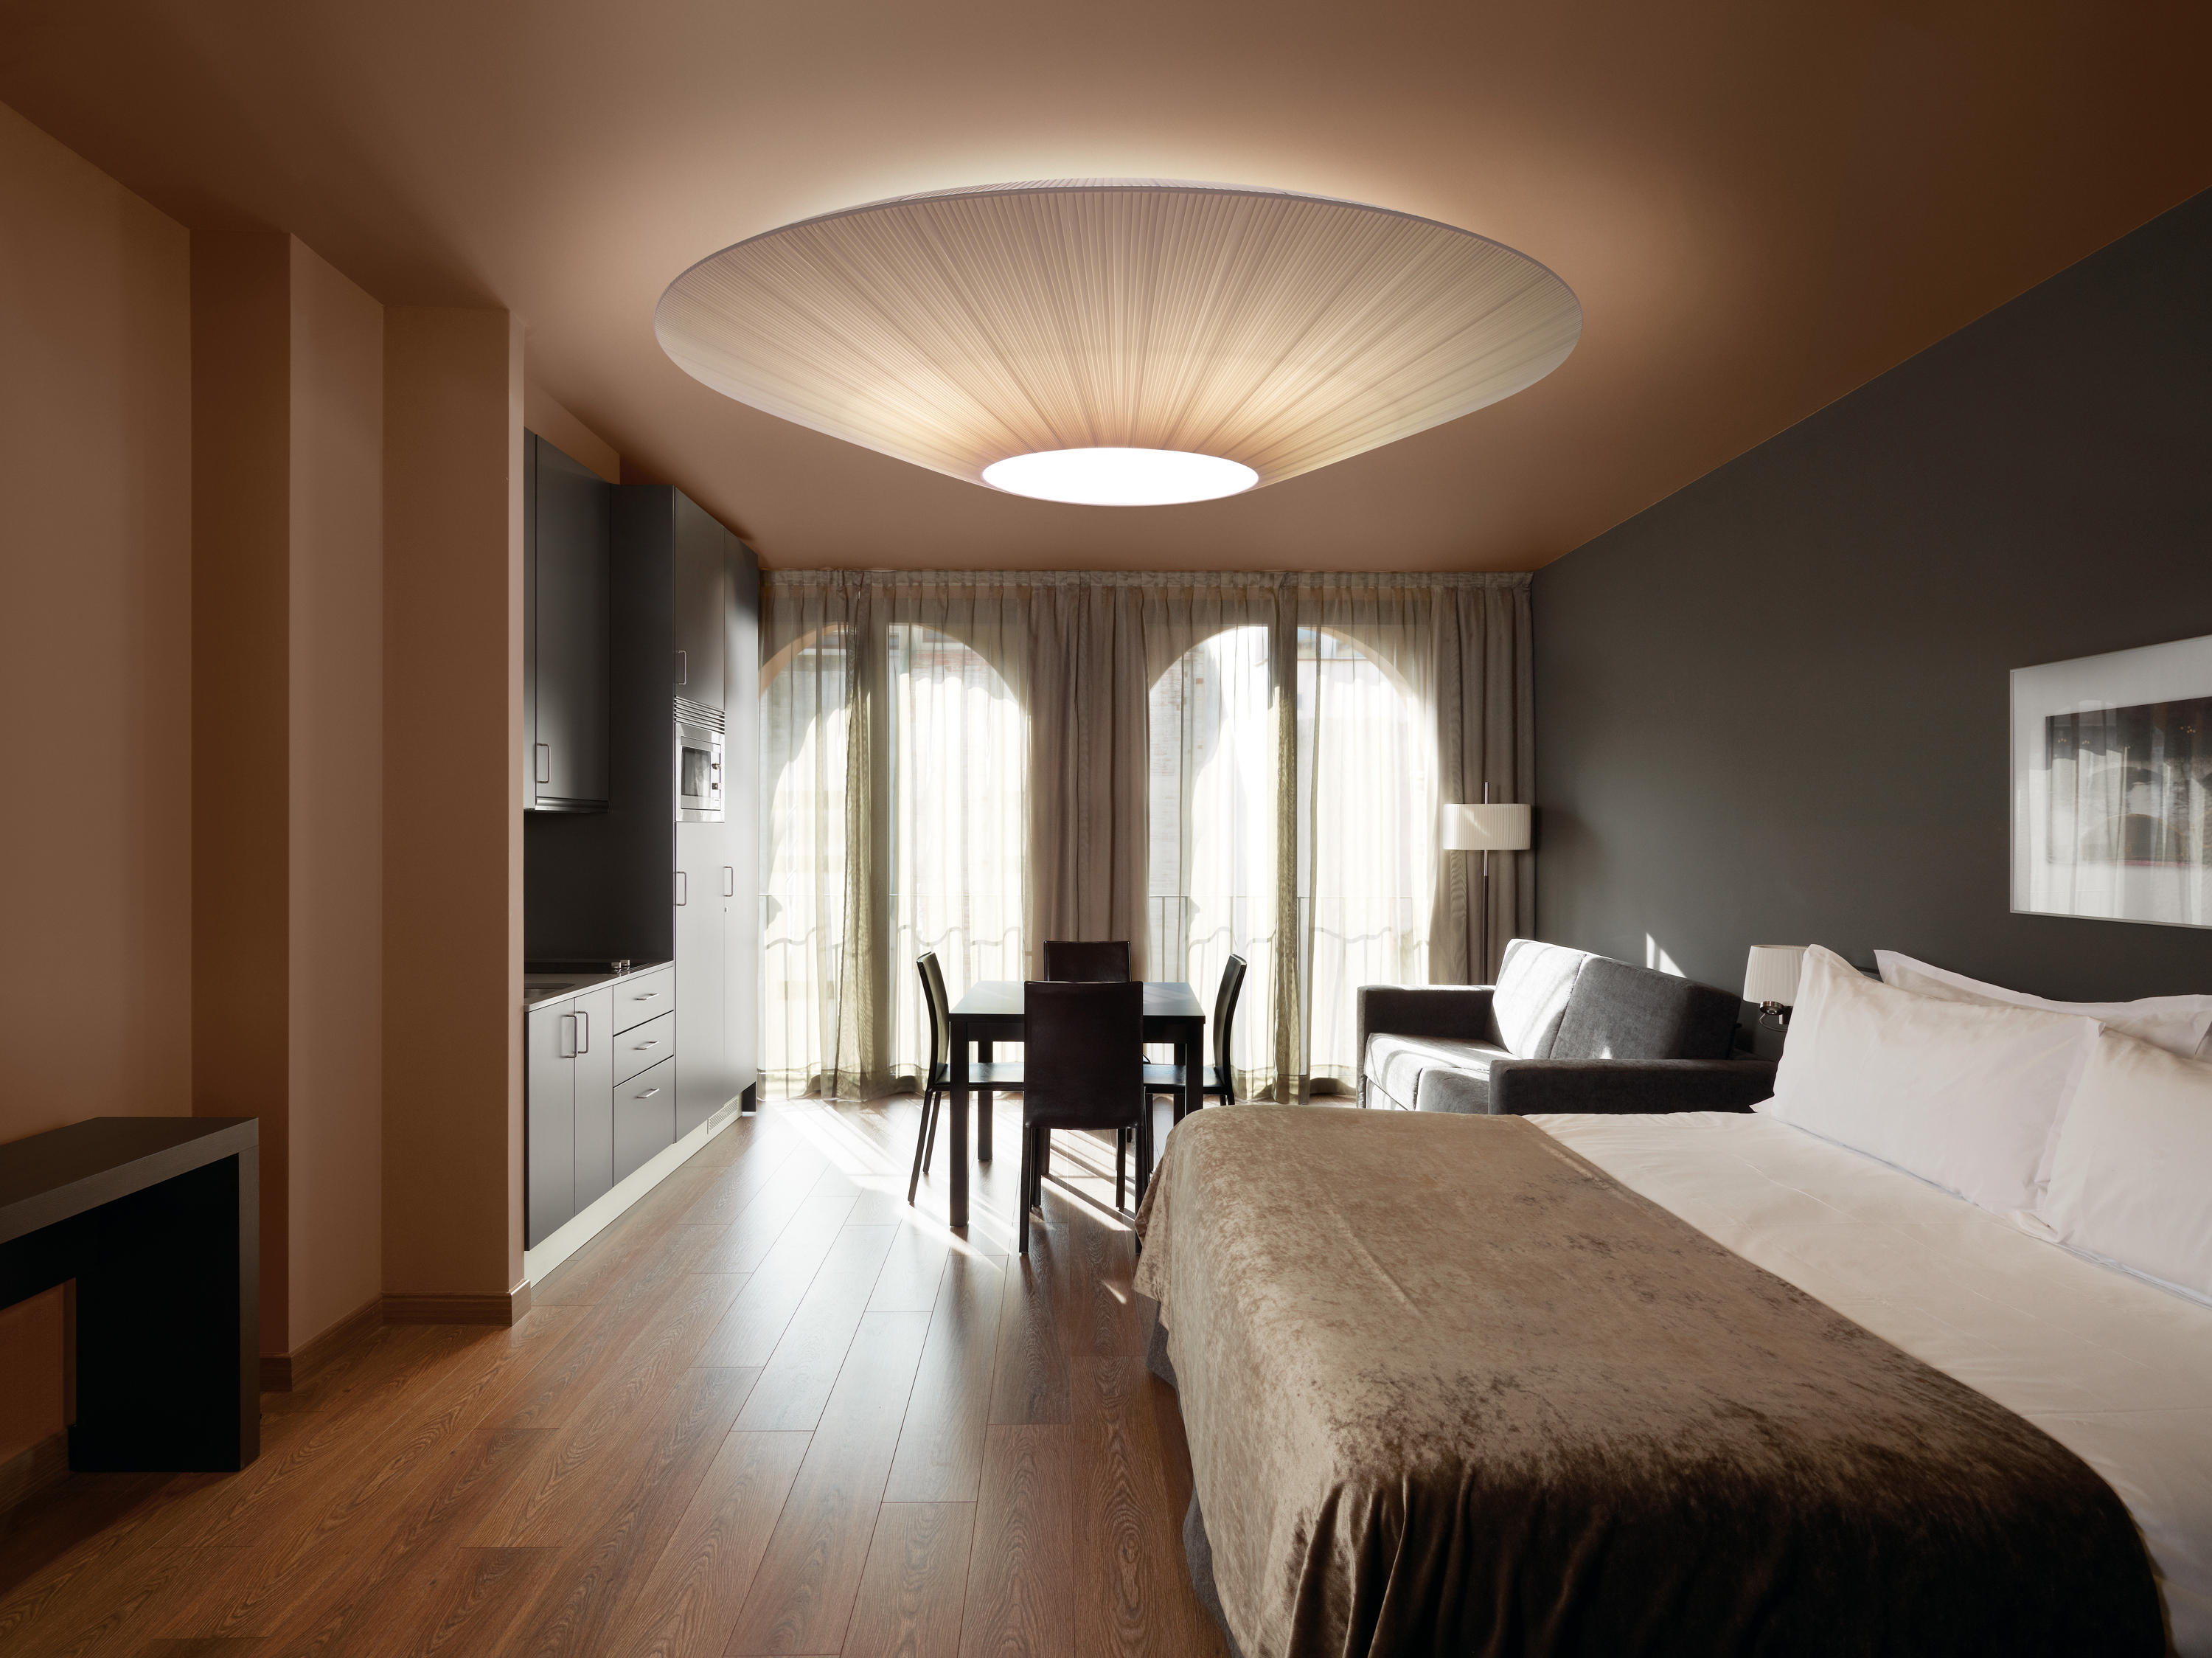 siam 200 ceiling light general lighting from bover architonic. Black Bedroom Furniture Sets. Home Design Ideas